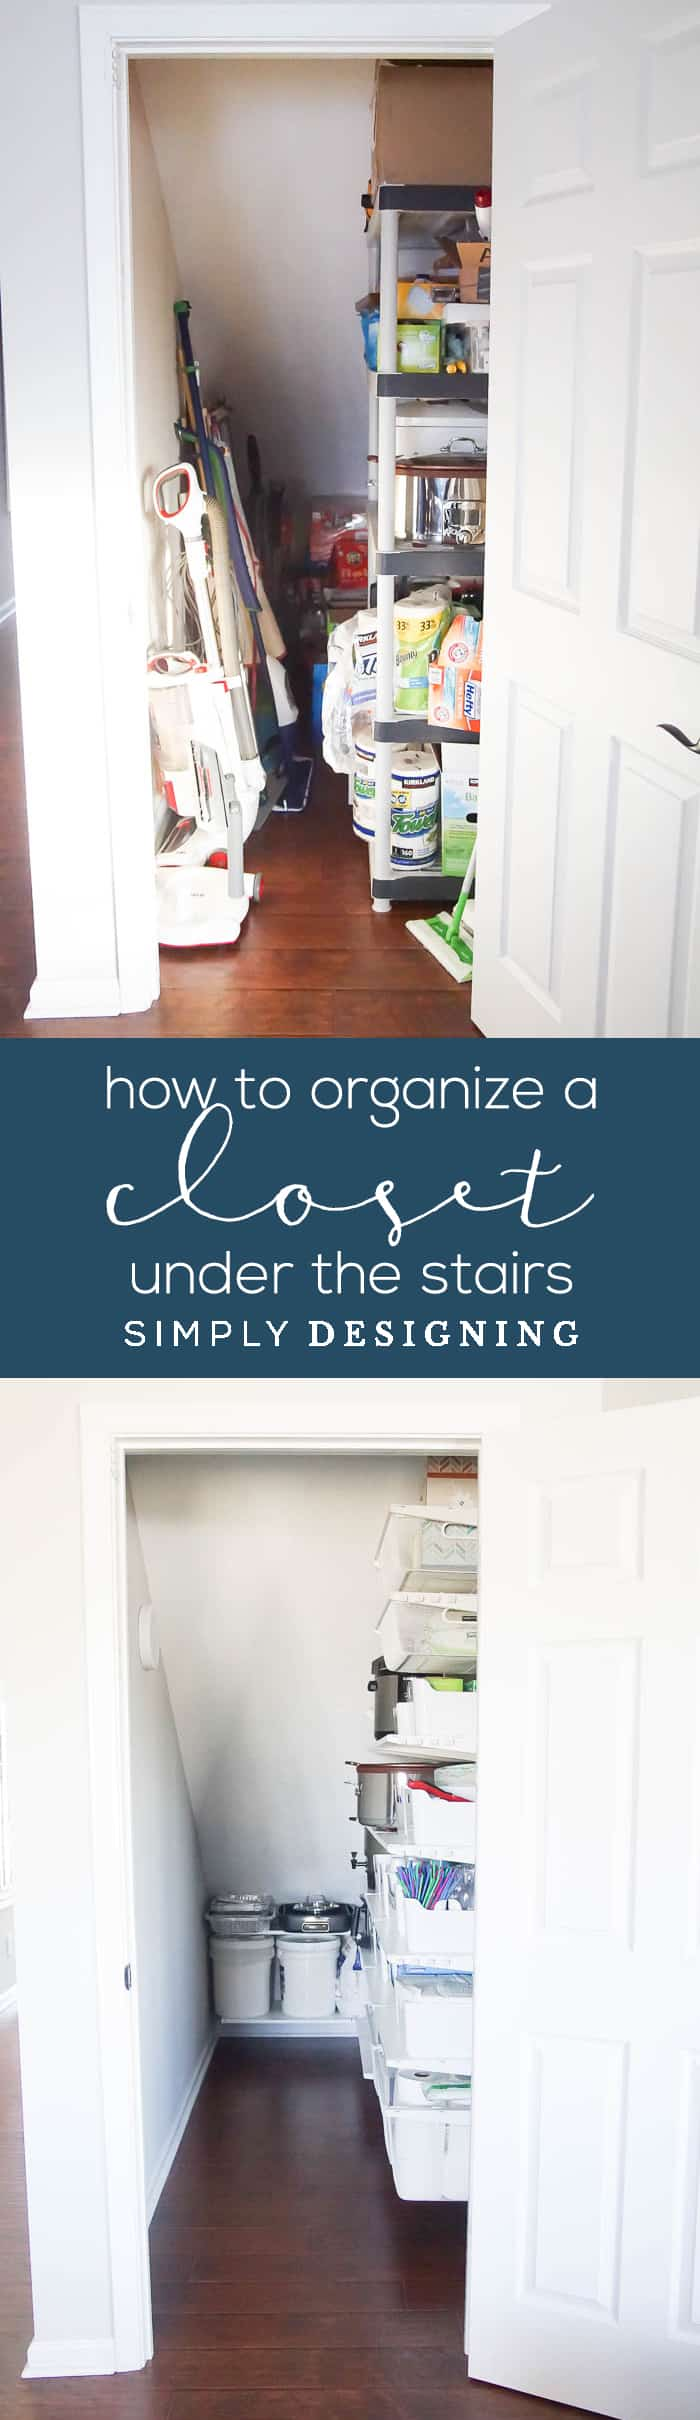 How to Organize a Closet Under the Stairs - before and after